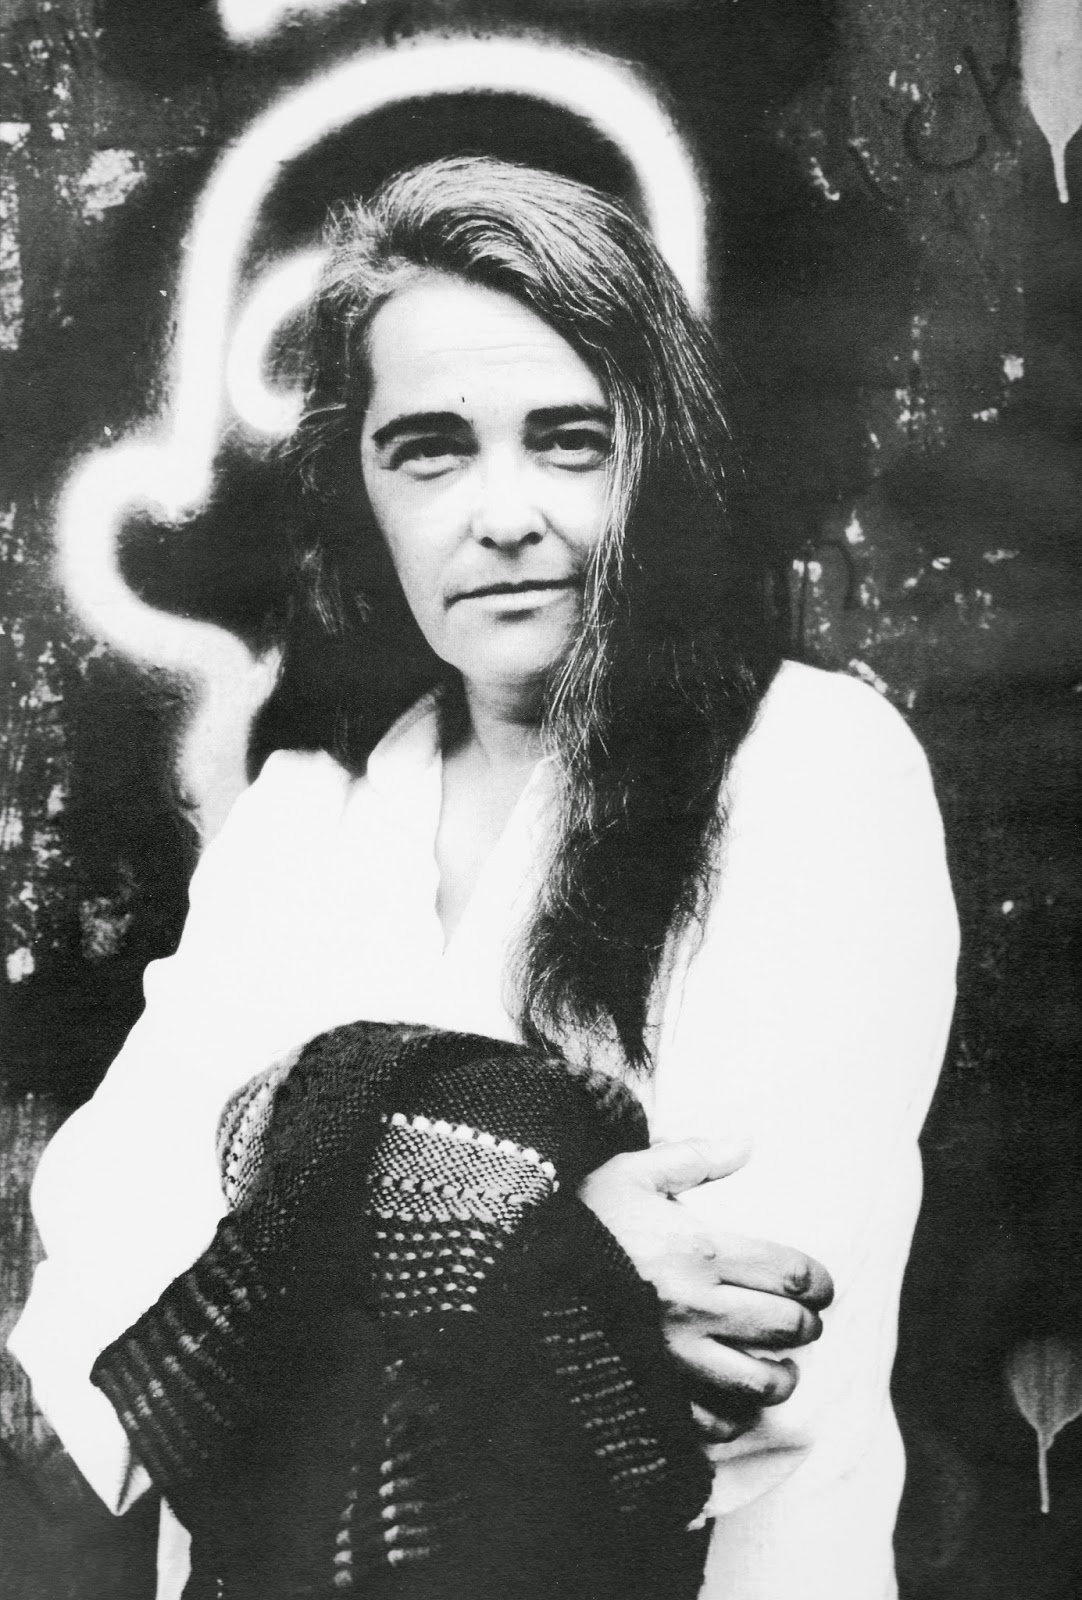 Kate Millett - Prominent influence on second-wave feminism